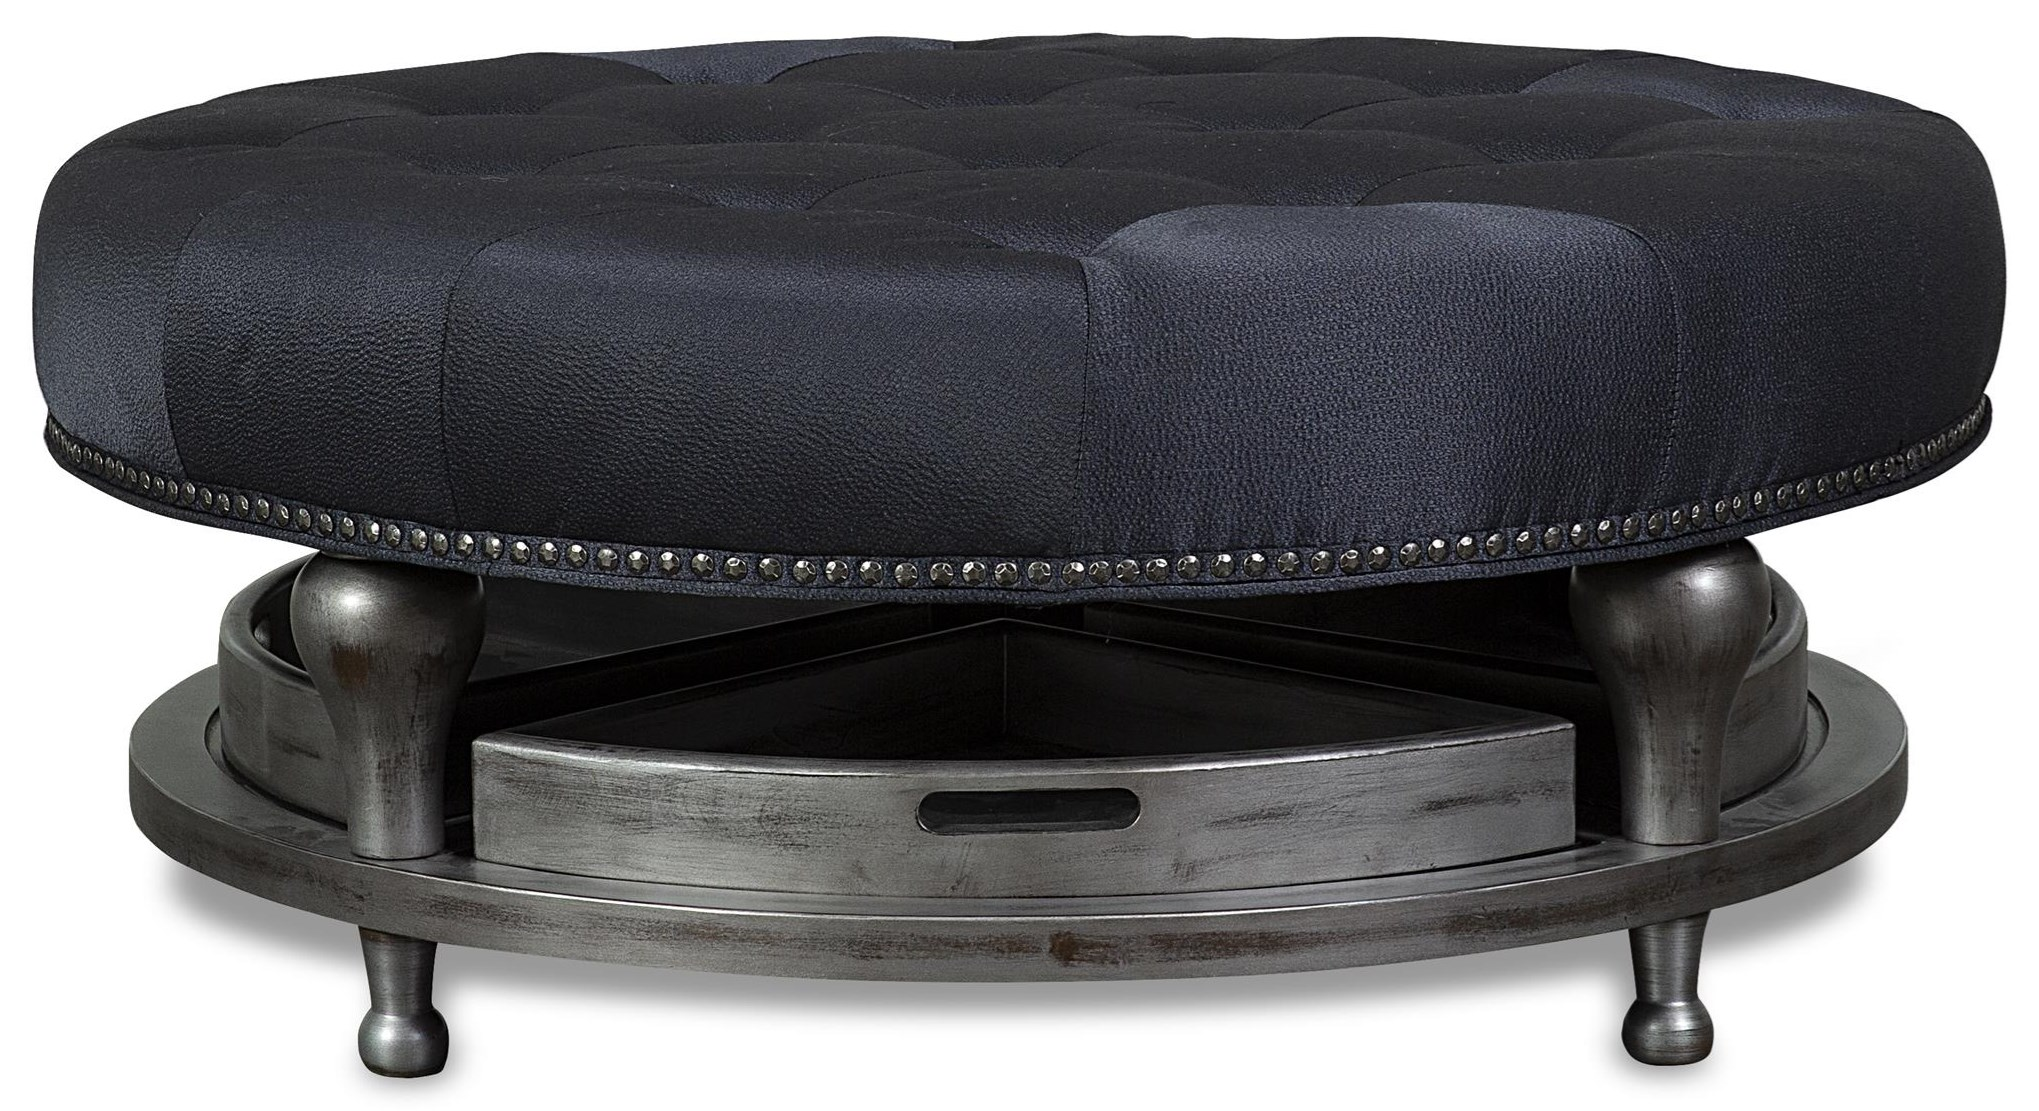 Gage Gage 4 Tray Cocktail Ottoman by Aria Designs at Morris Home